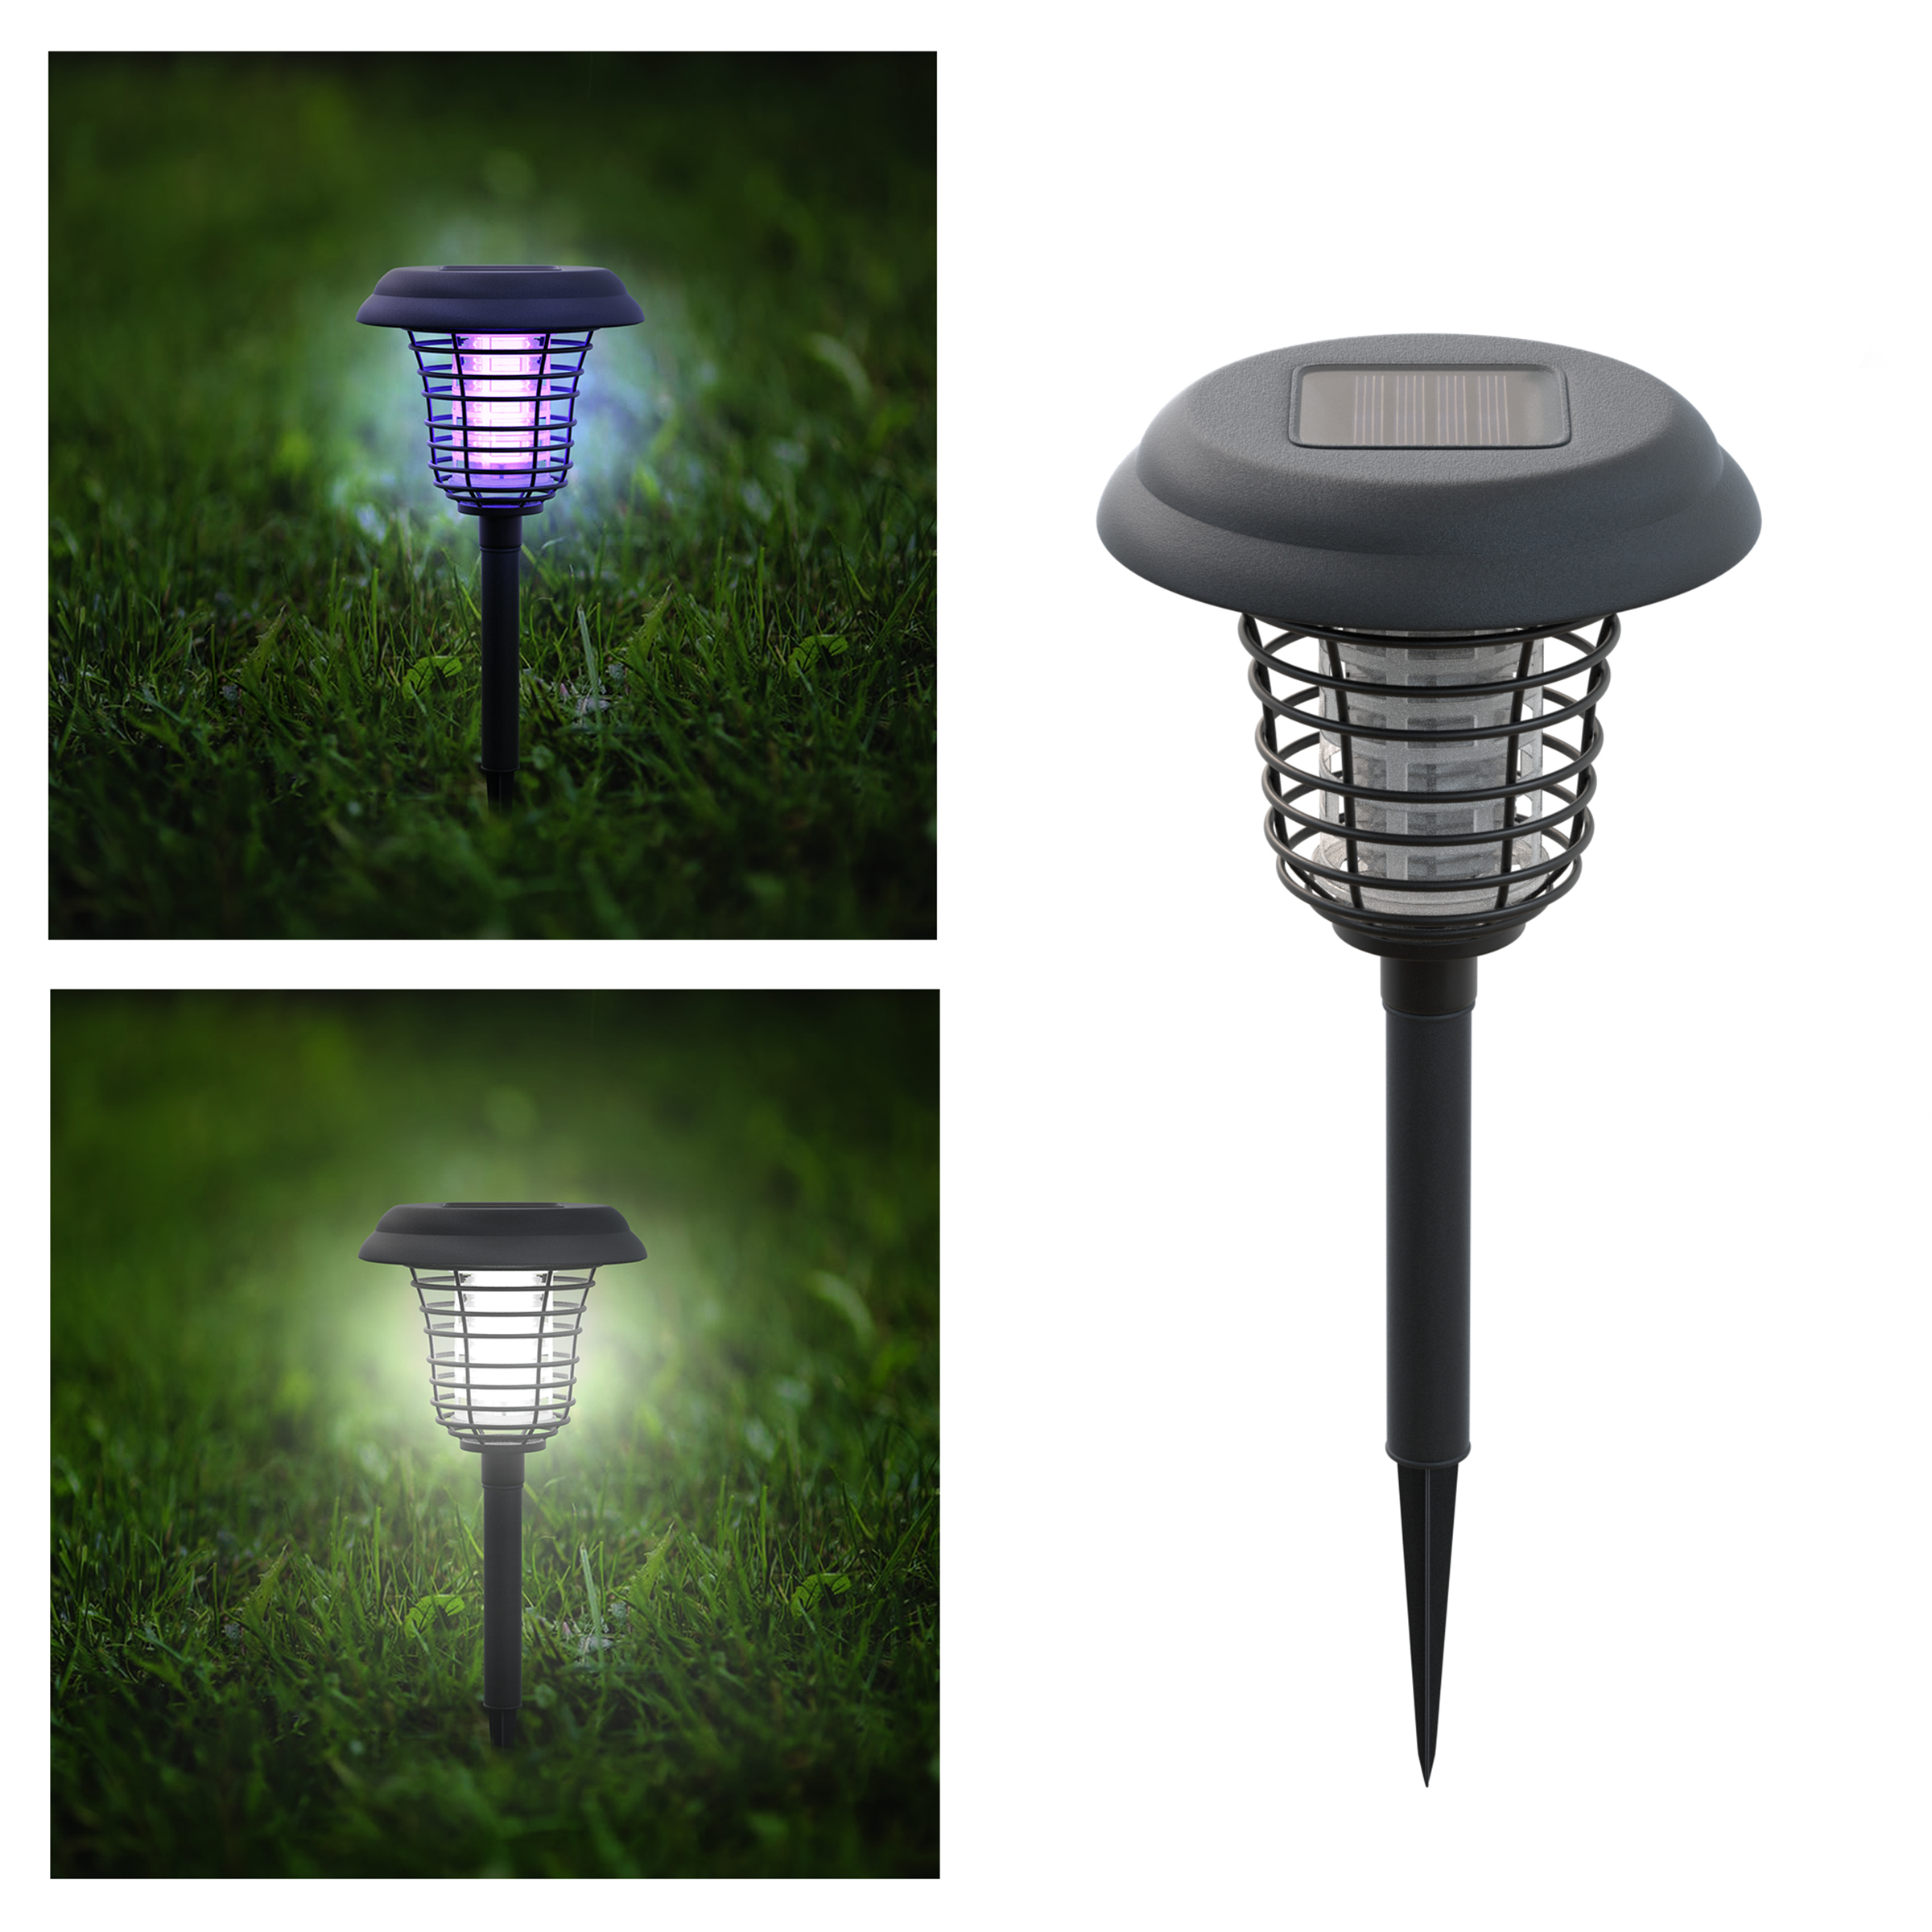 Superieur Solar Powered Light, Mosquito And Insect Bug Zapper LED/UV Radiation  Outdoor Stake